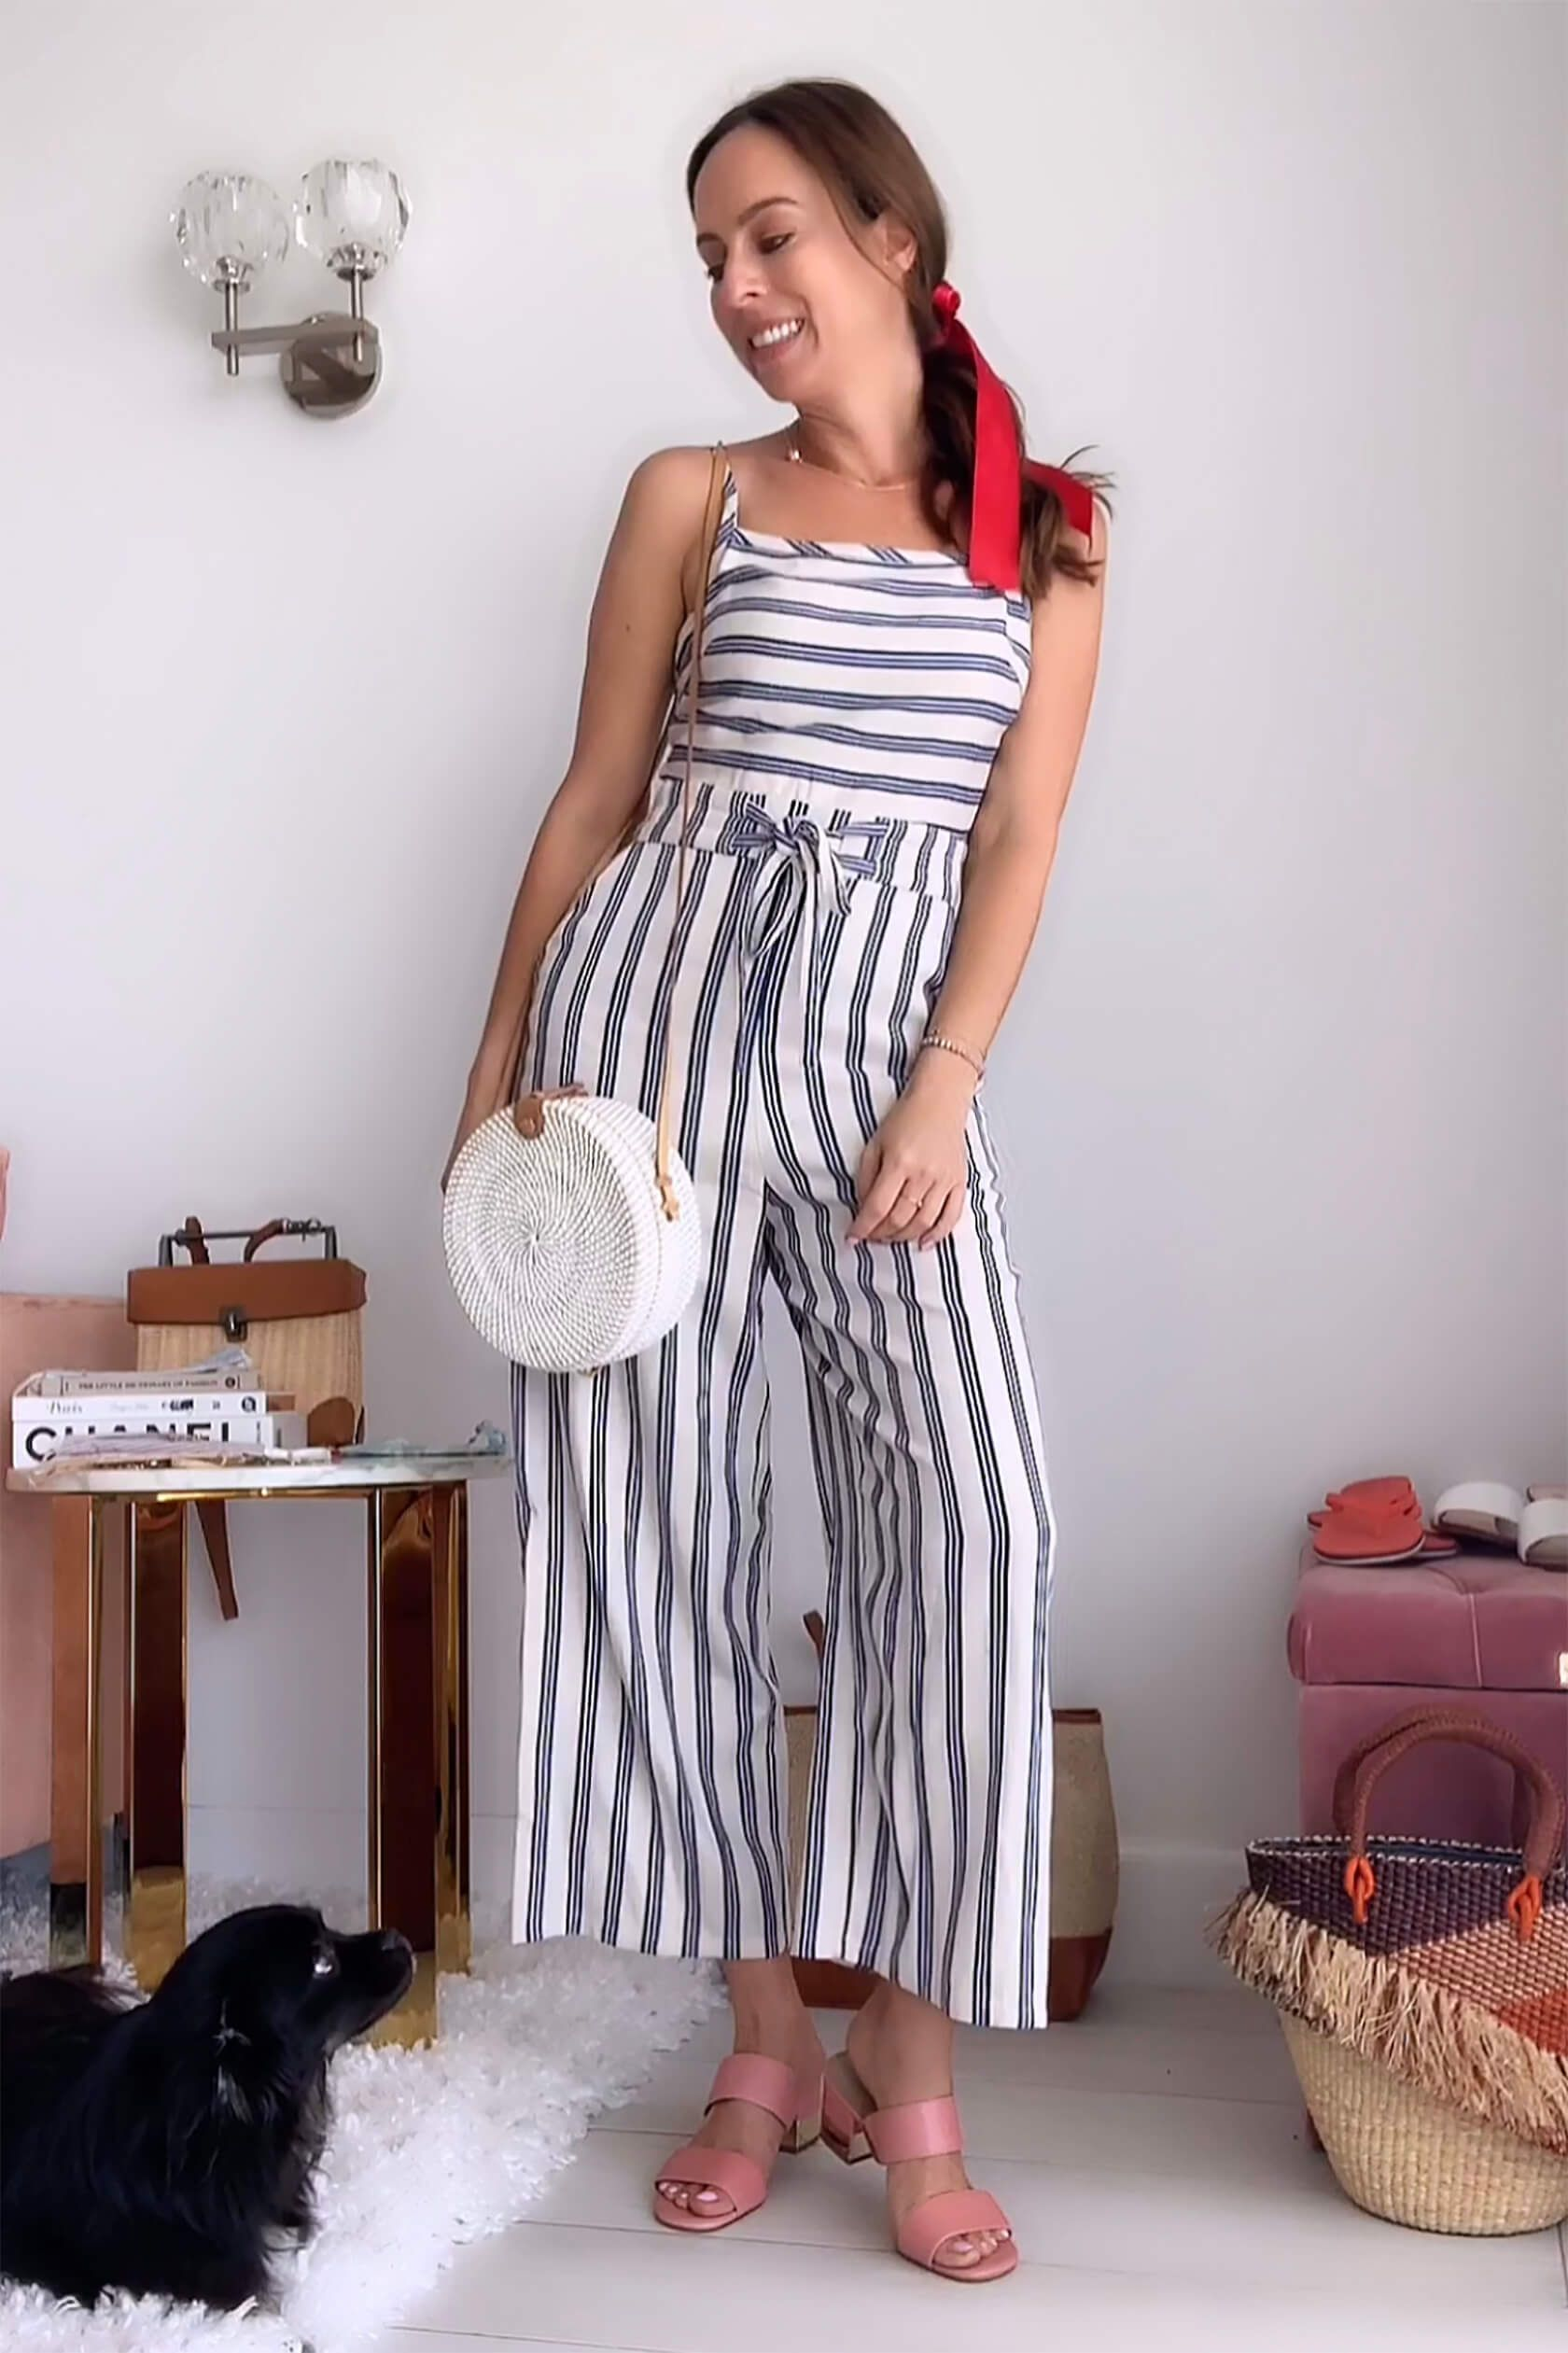 4th Of July Outfit Ideas With Face Masks Sydne Style Fashion 4th Of July Outfits White Maxi Dresses [ 2521 x 1680 Pixel ]